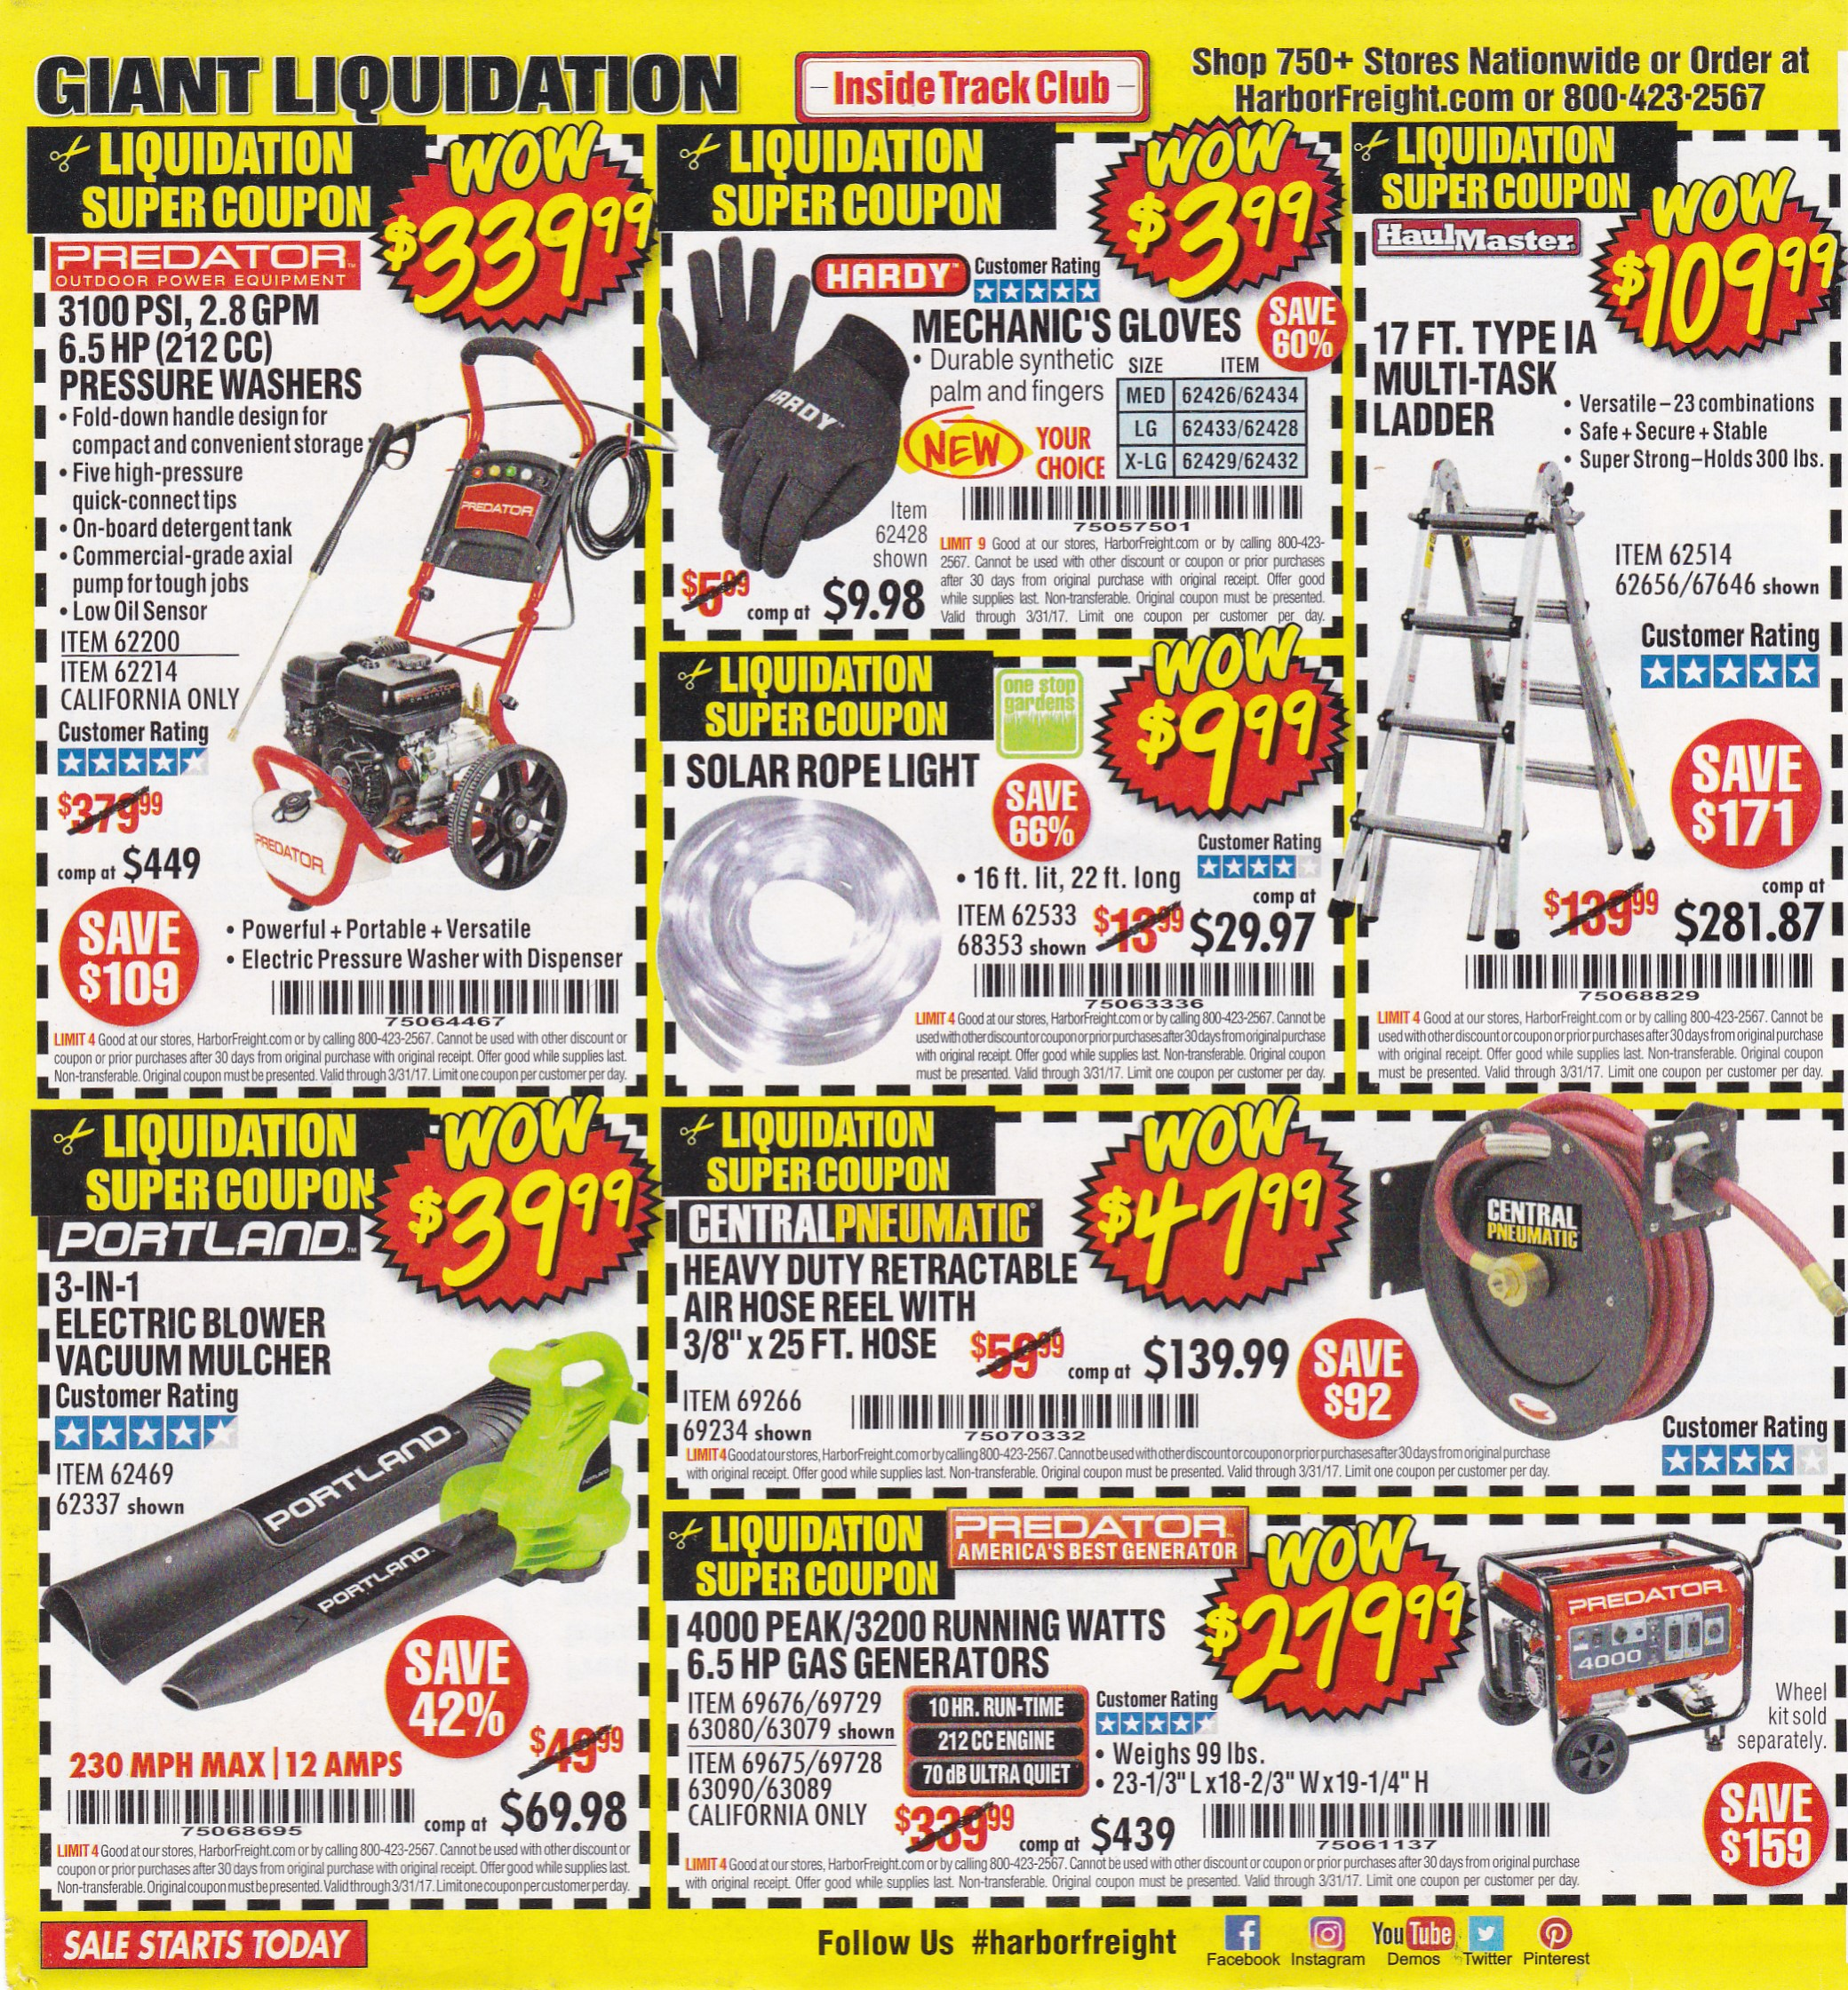 Over 100 Harbor Freight Coupons! Expiring 3/31/17